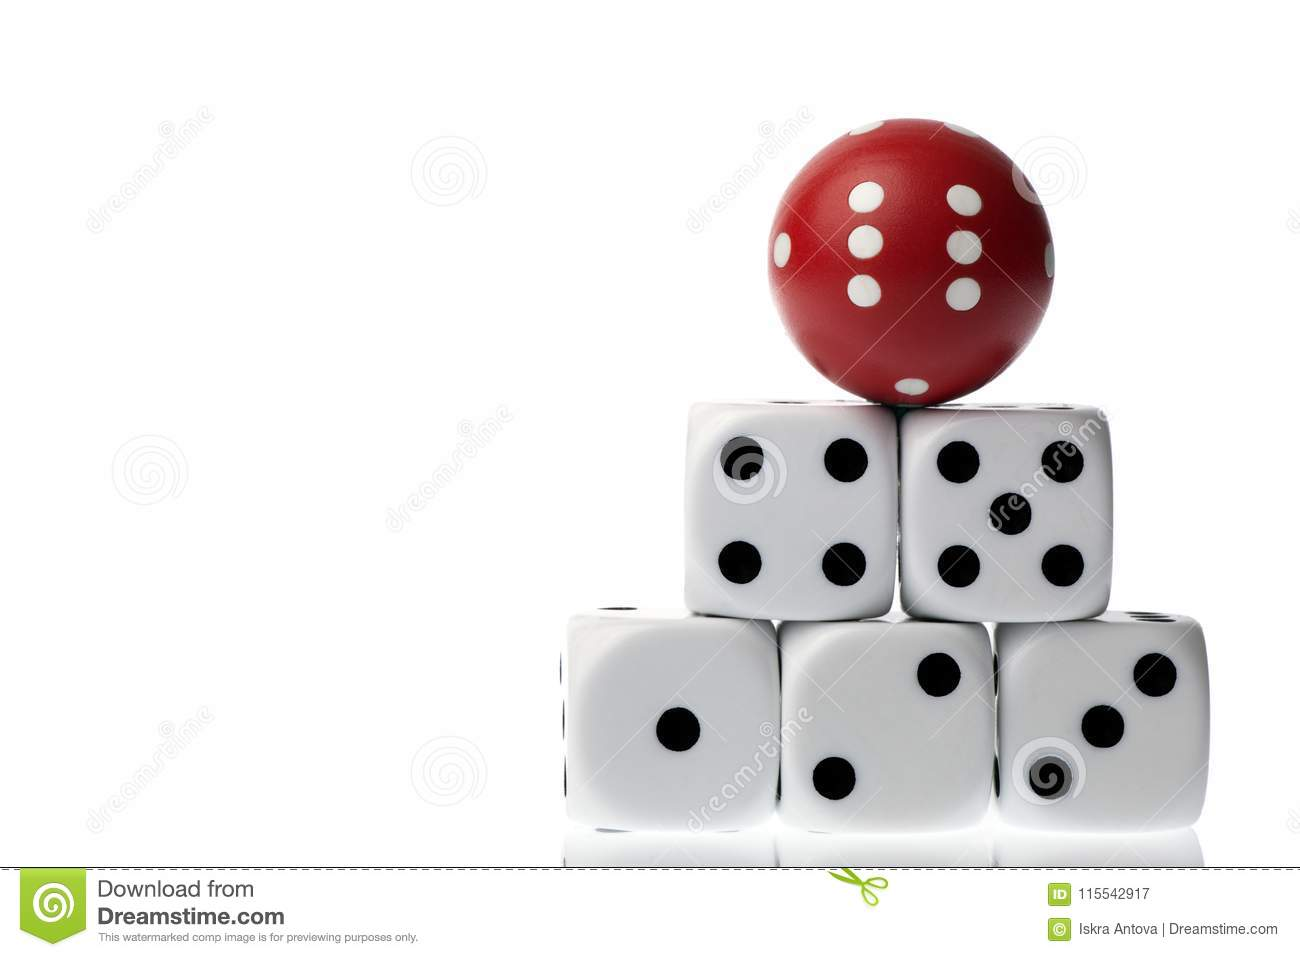 Five square dice and red rounded die isolated on white